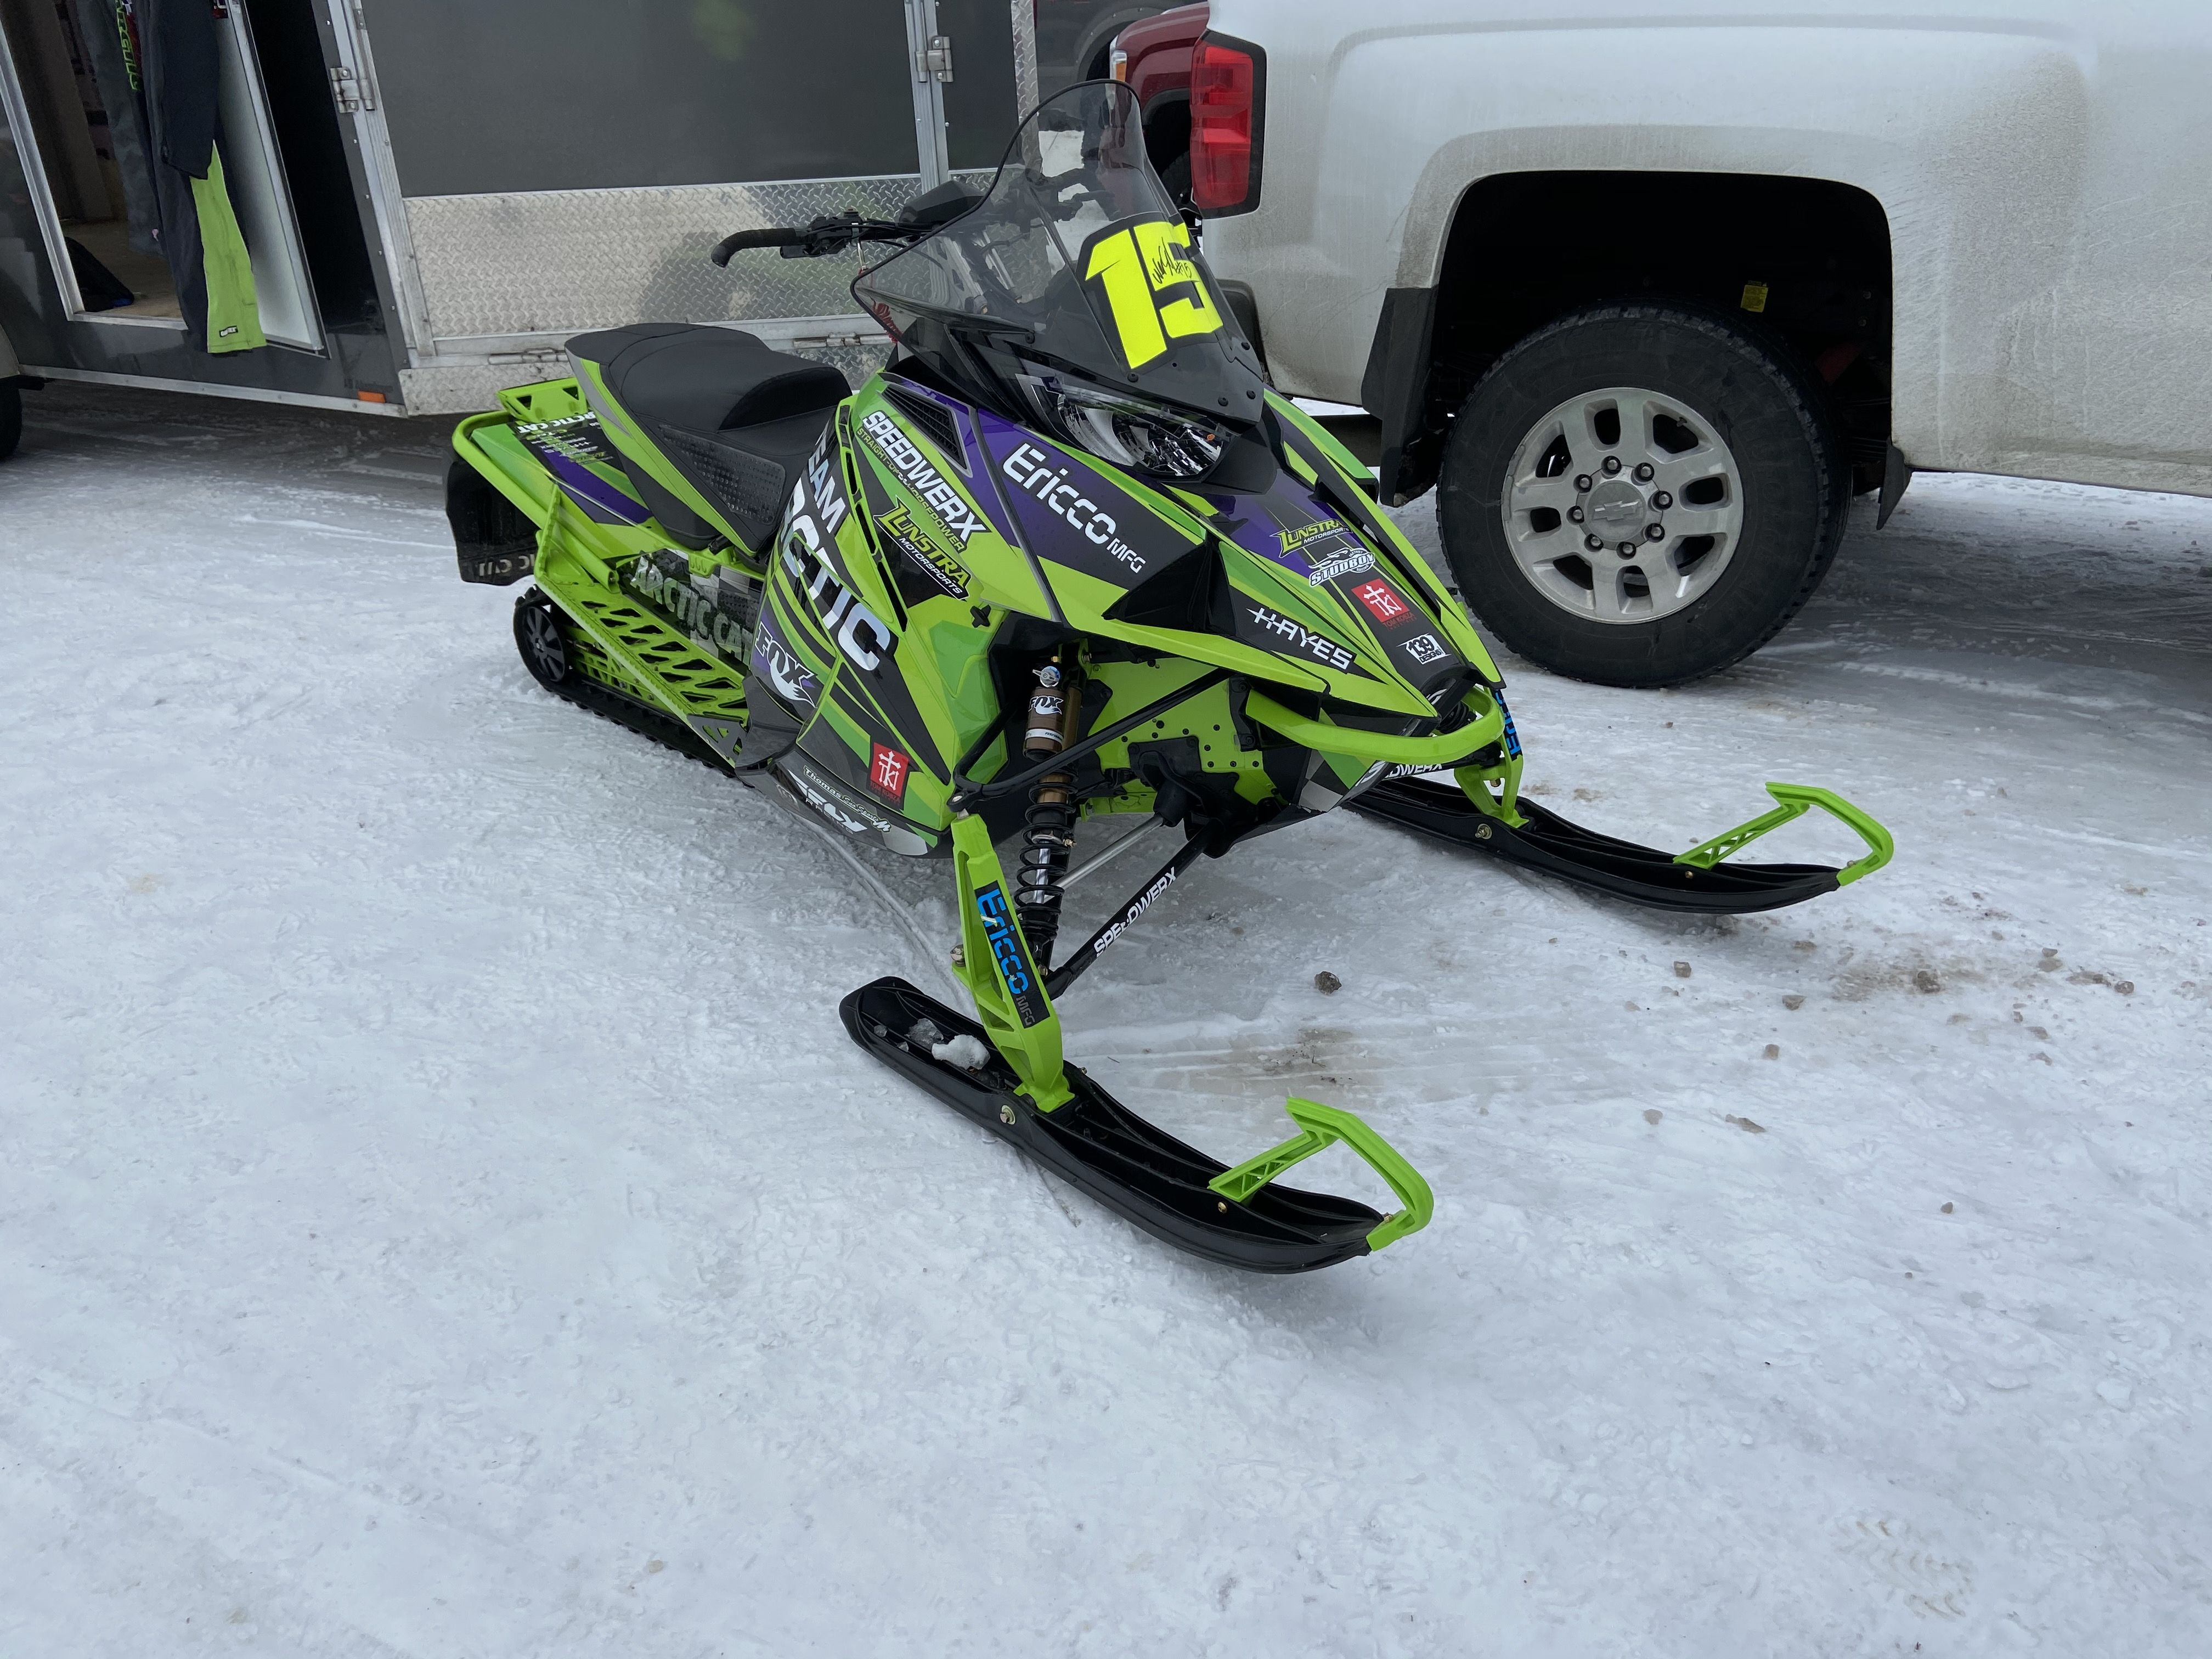 Pin by Shelby Raida on Arctic cat snowmobile in 2020 Toy